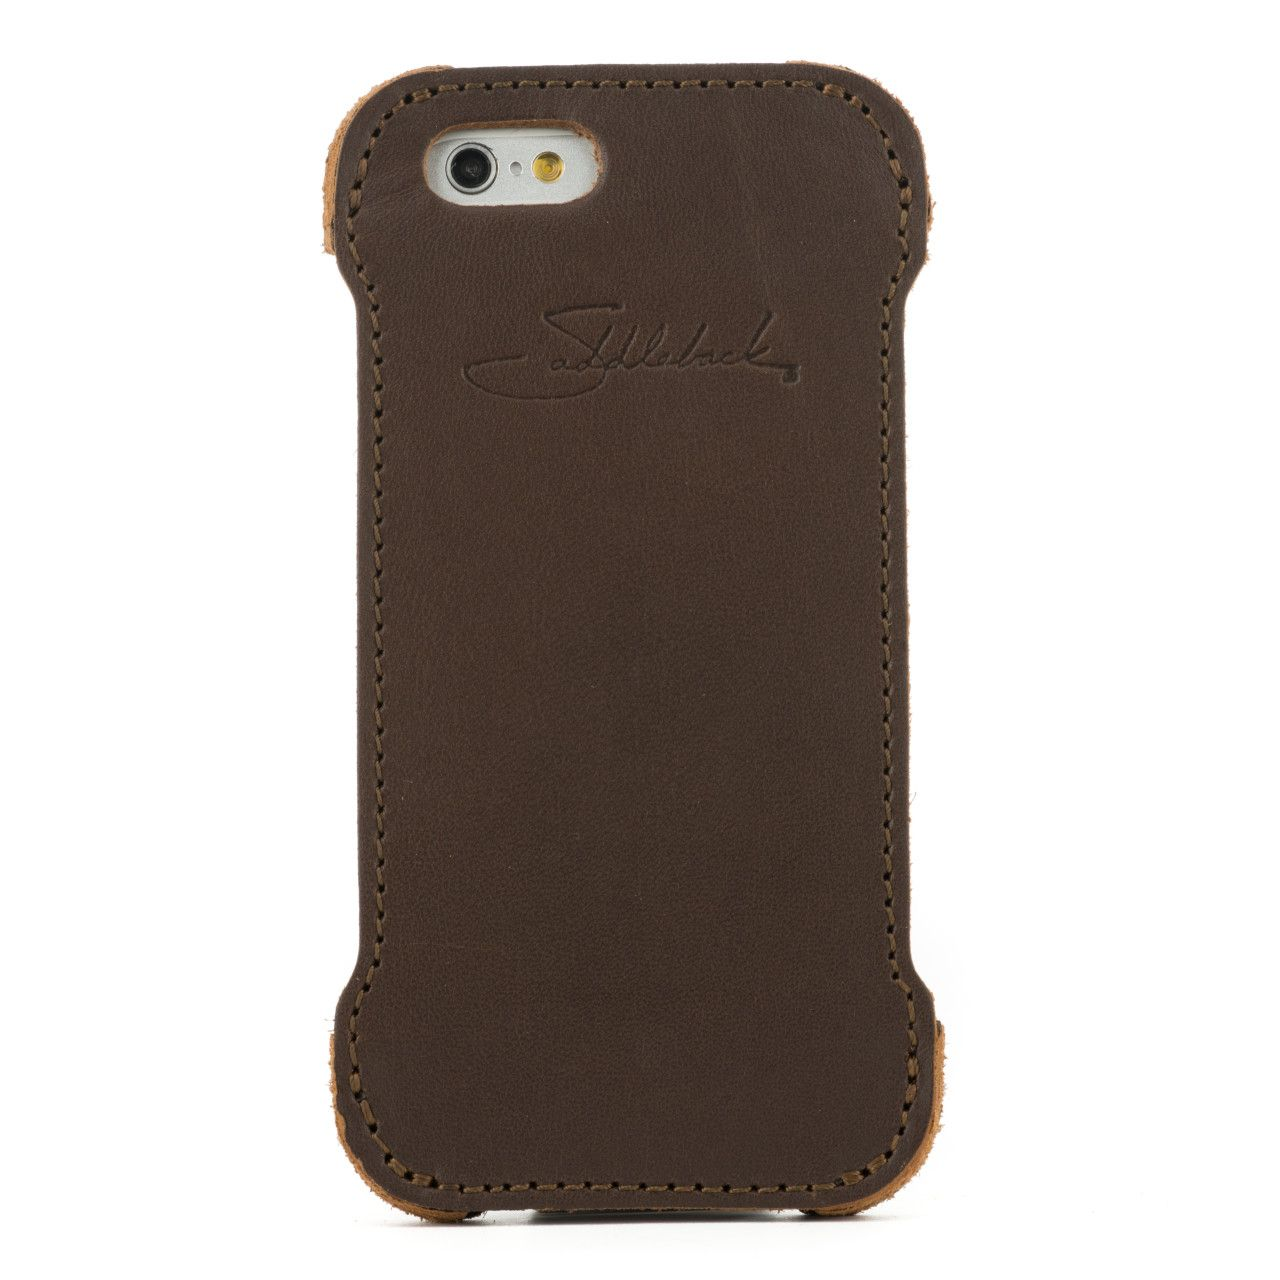 iphone 6 leather case small in dark coffee brown leather